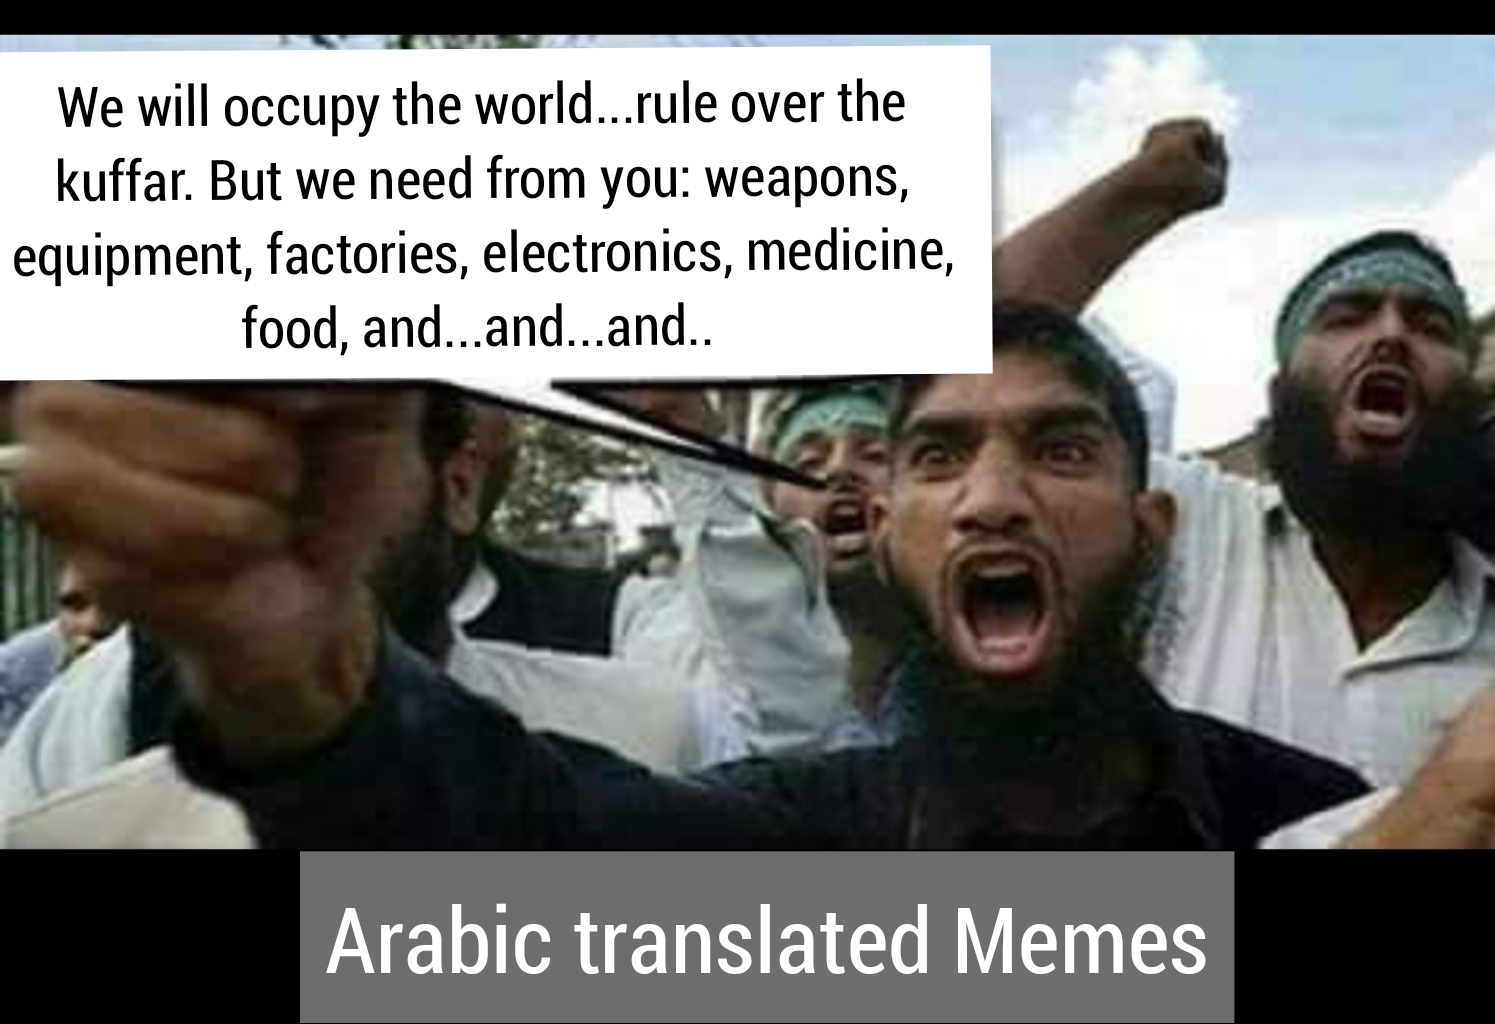 Islamist thinking weapons factories, electronics medicine food technology expand logic satire